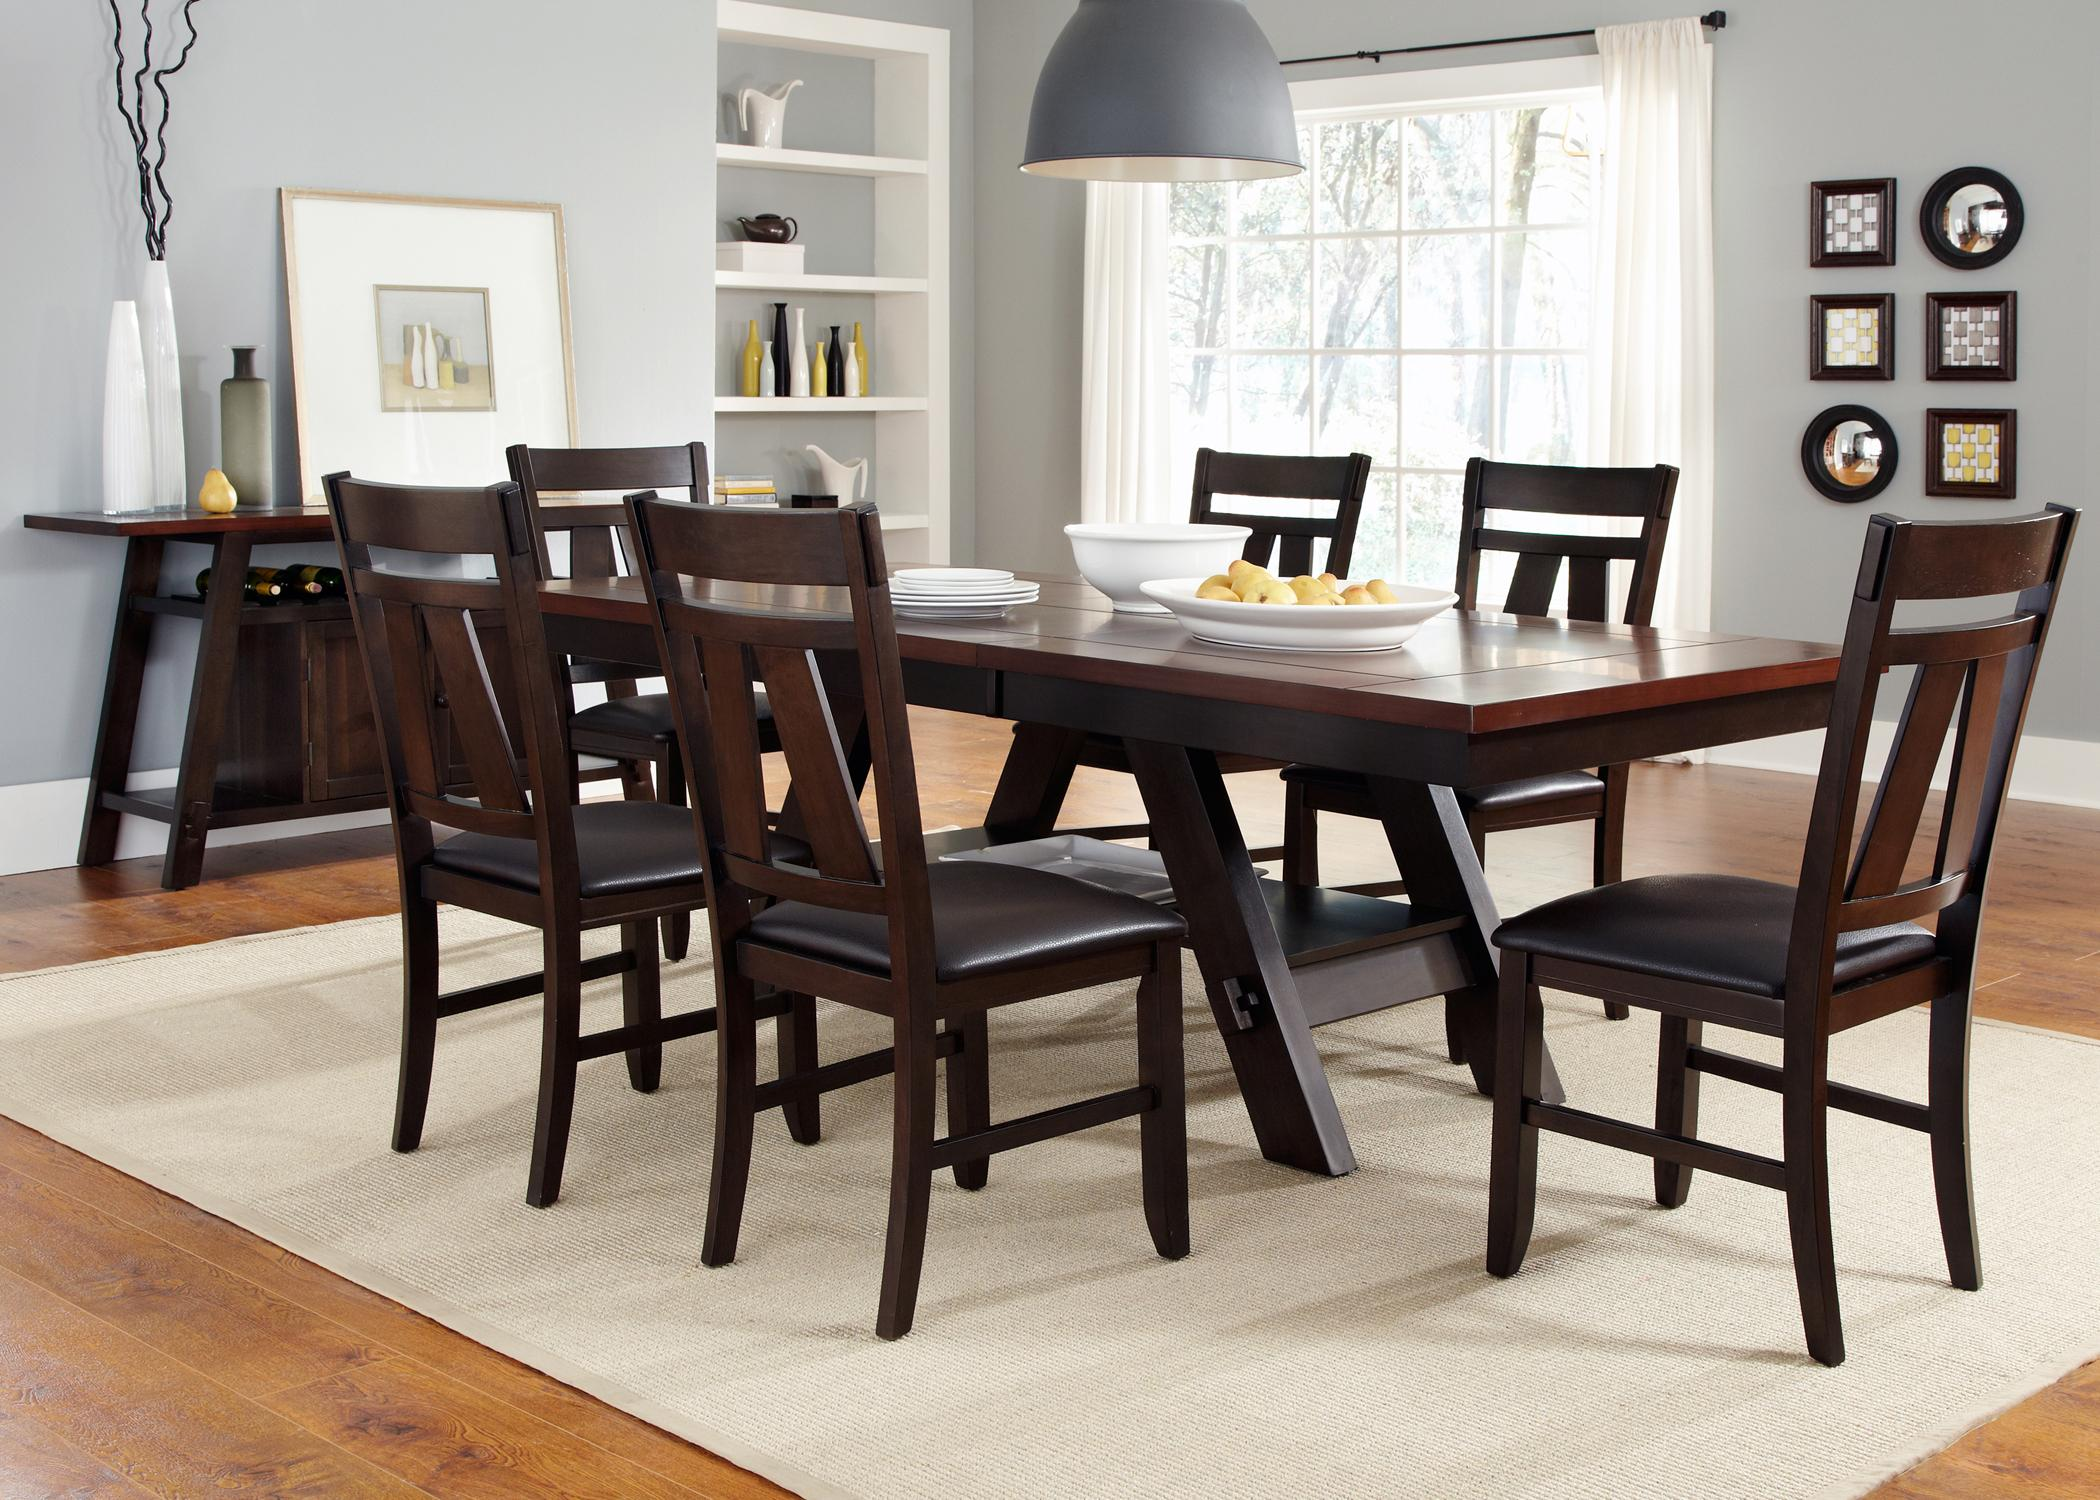 Lawson Formal Dining Room Group by Liberty Furniture at Darvin Furniture